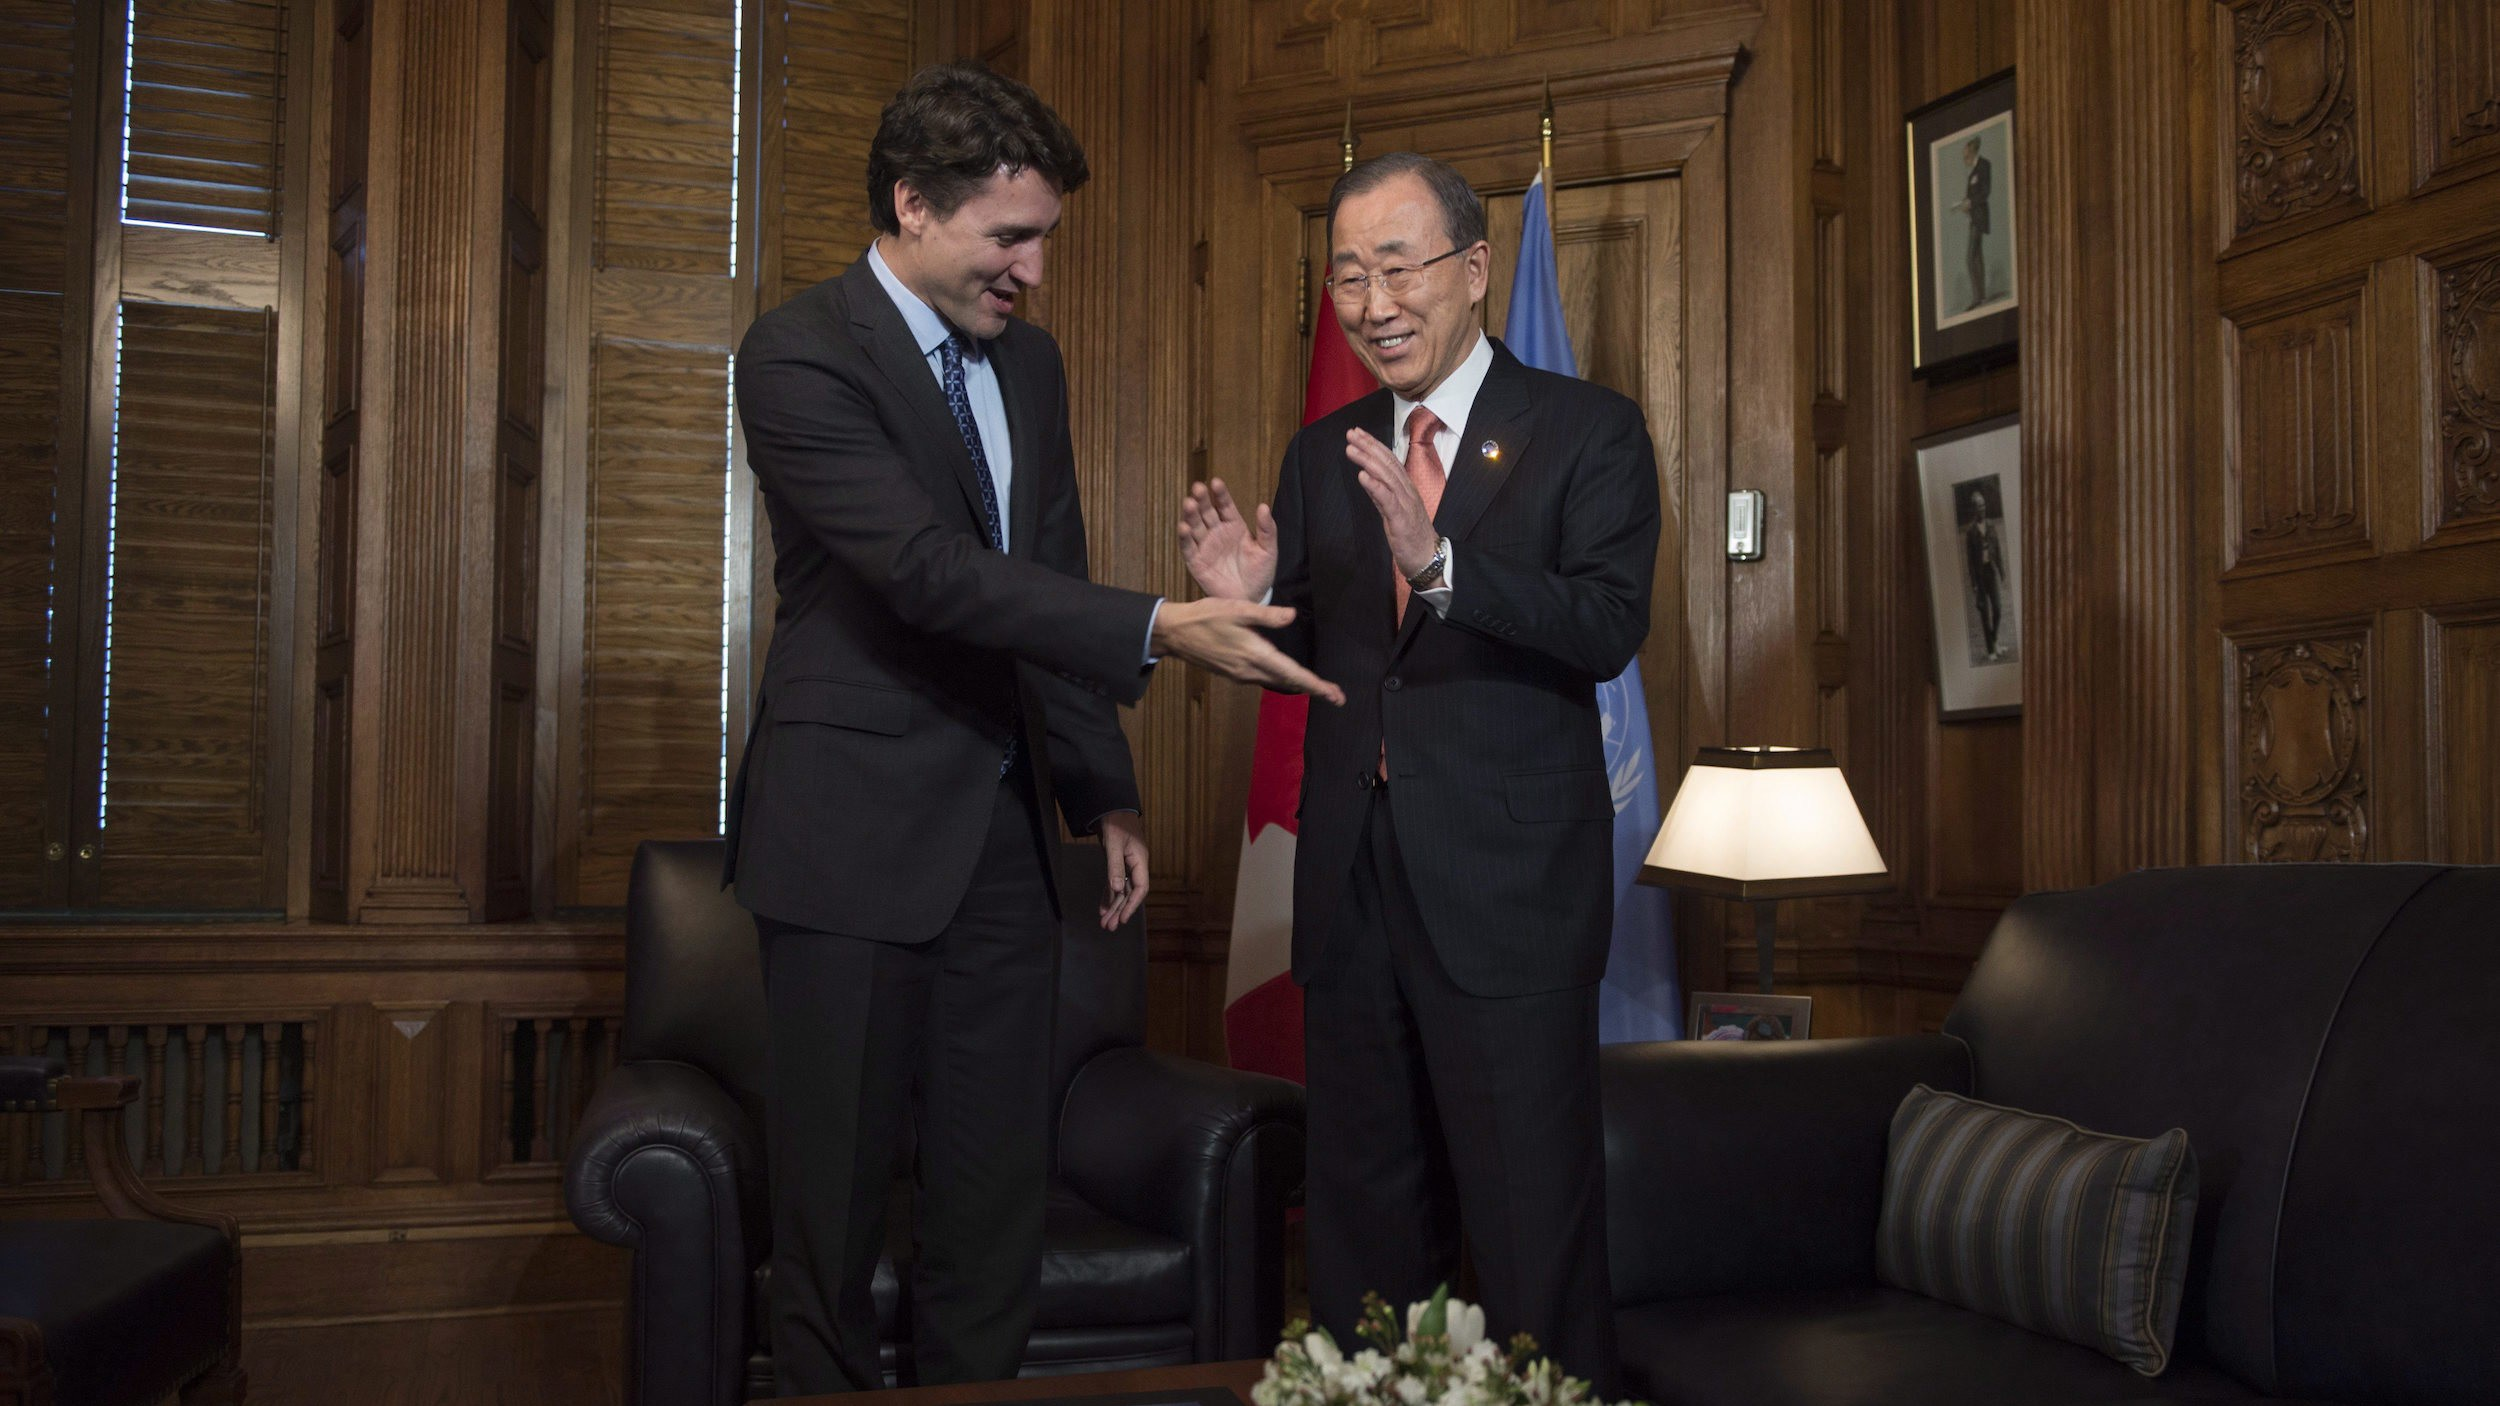 Justin Trudeau Wants Canada's Security Council Seat Back, But It May Take a Decade